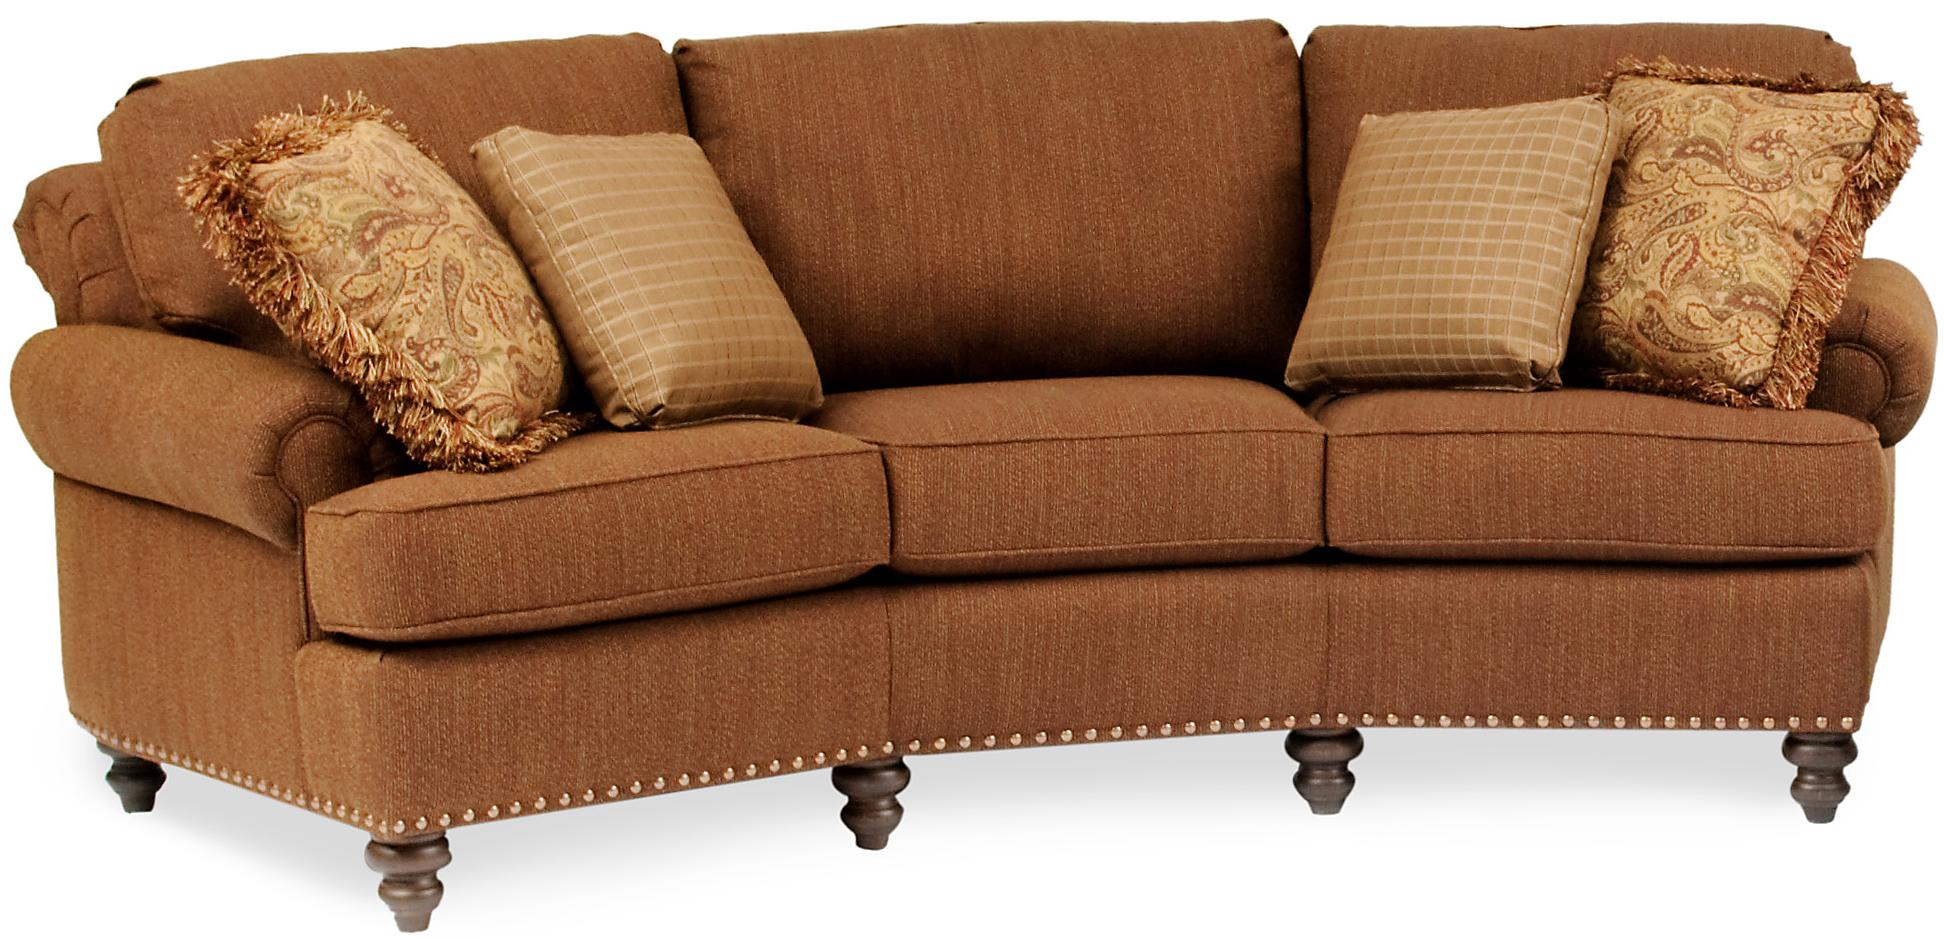 Curved Conversational Sofa With Nailhead Trim